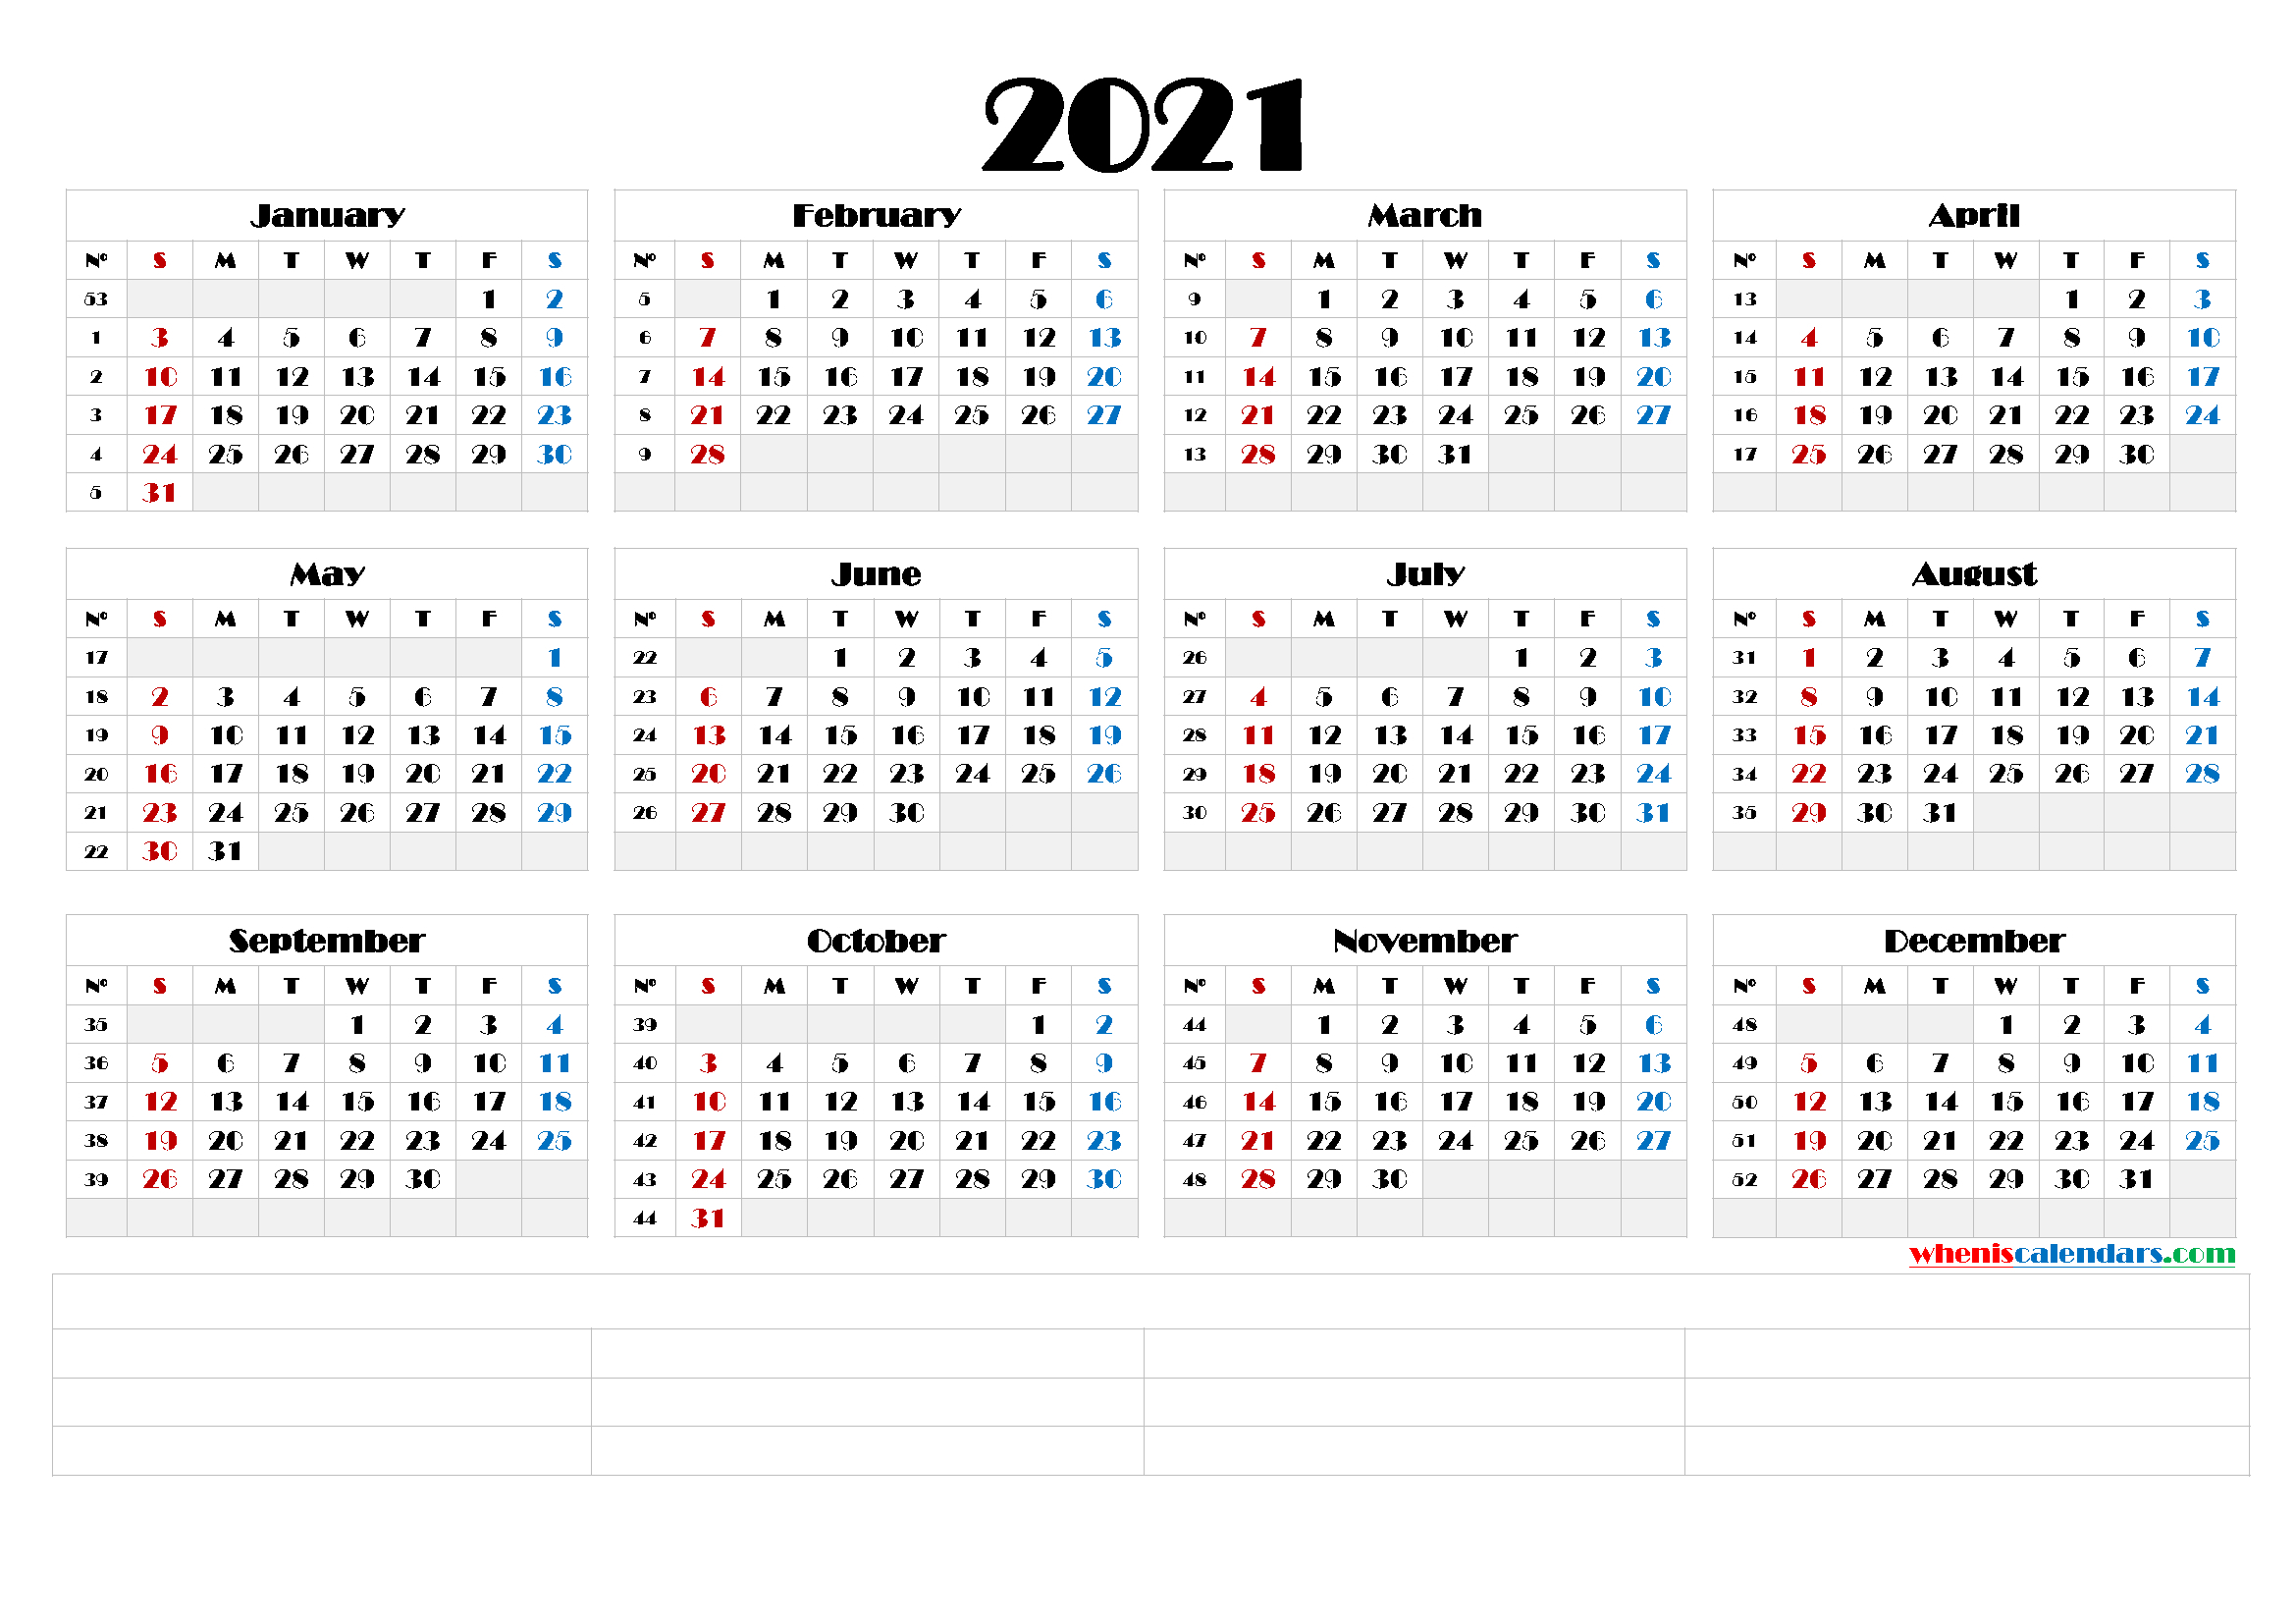 2021 Yearly Calendar Template Word (6 Templates)